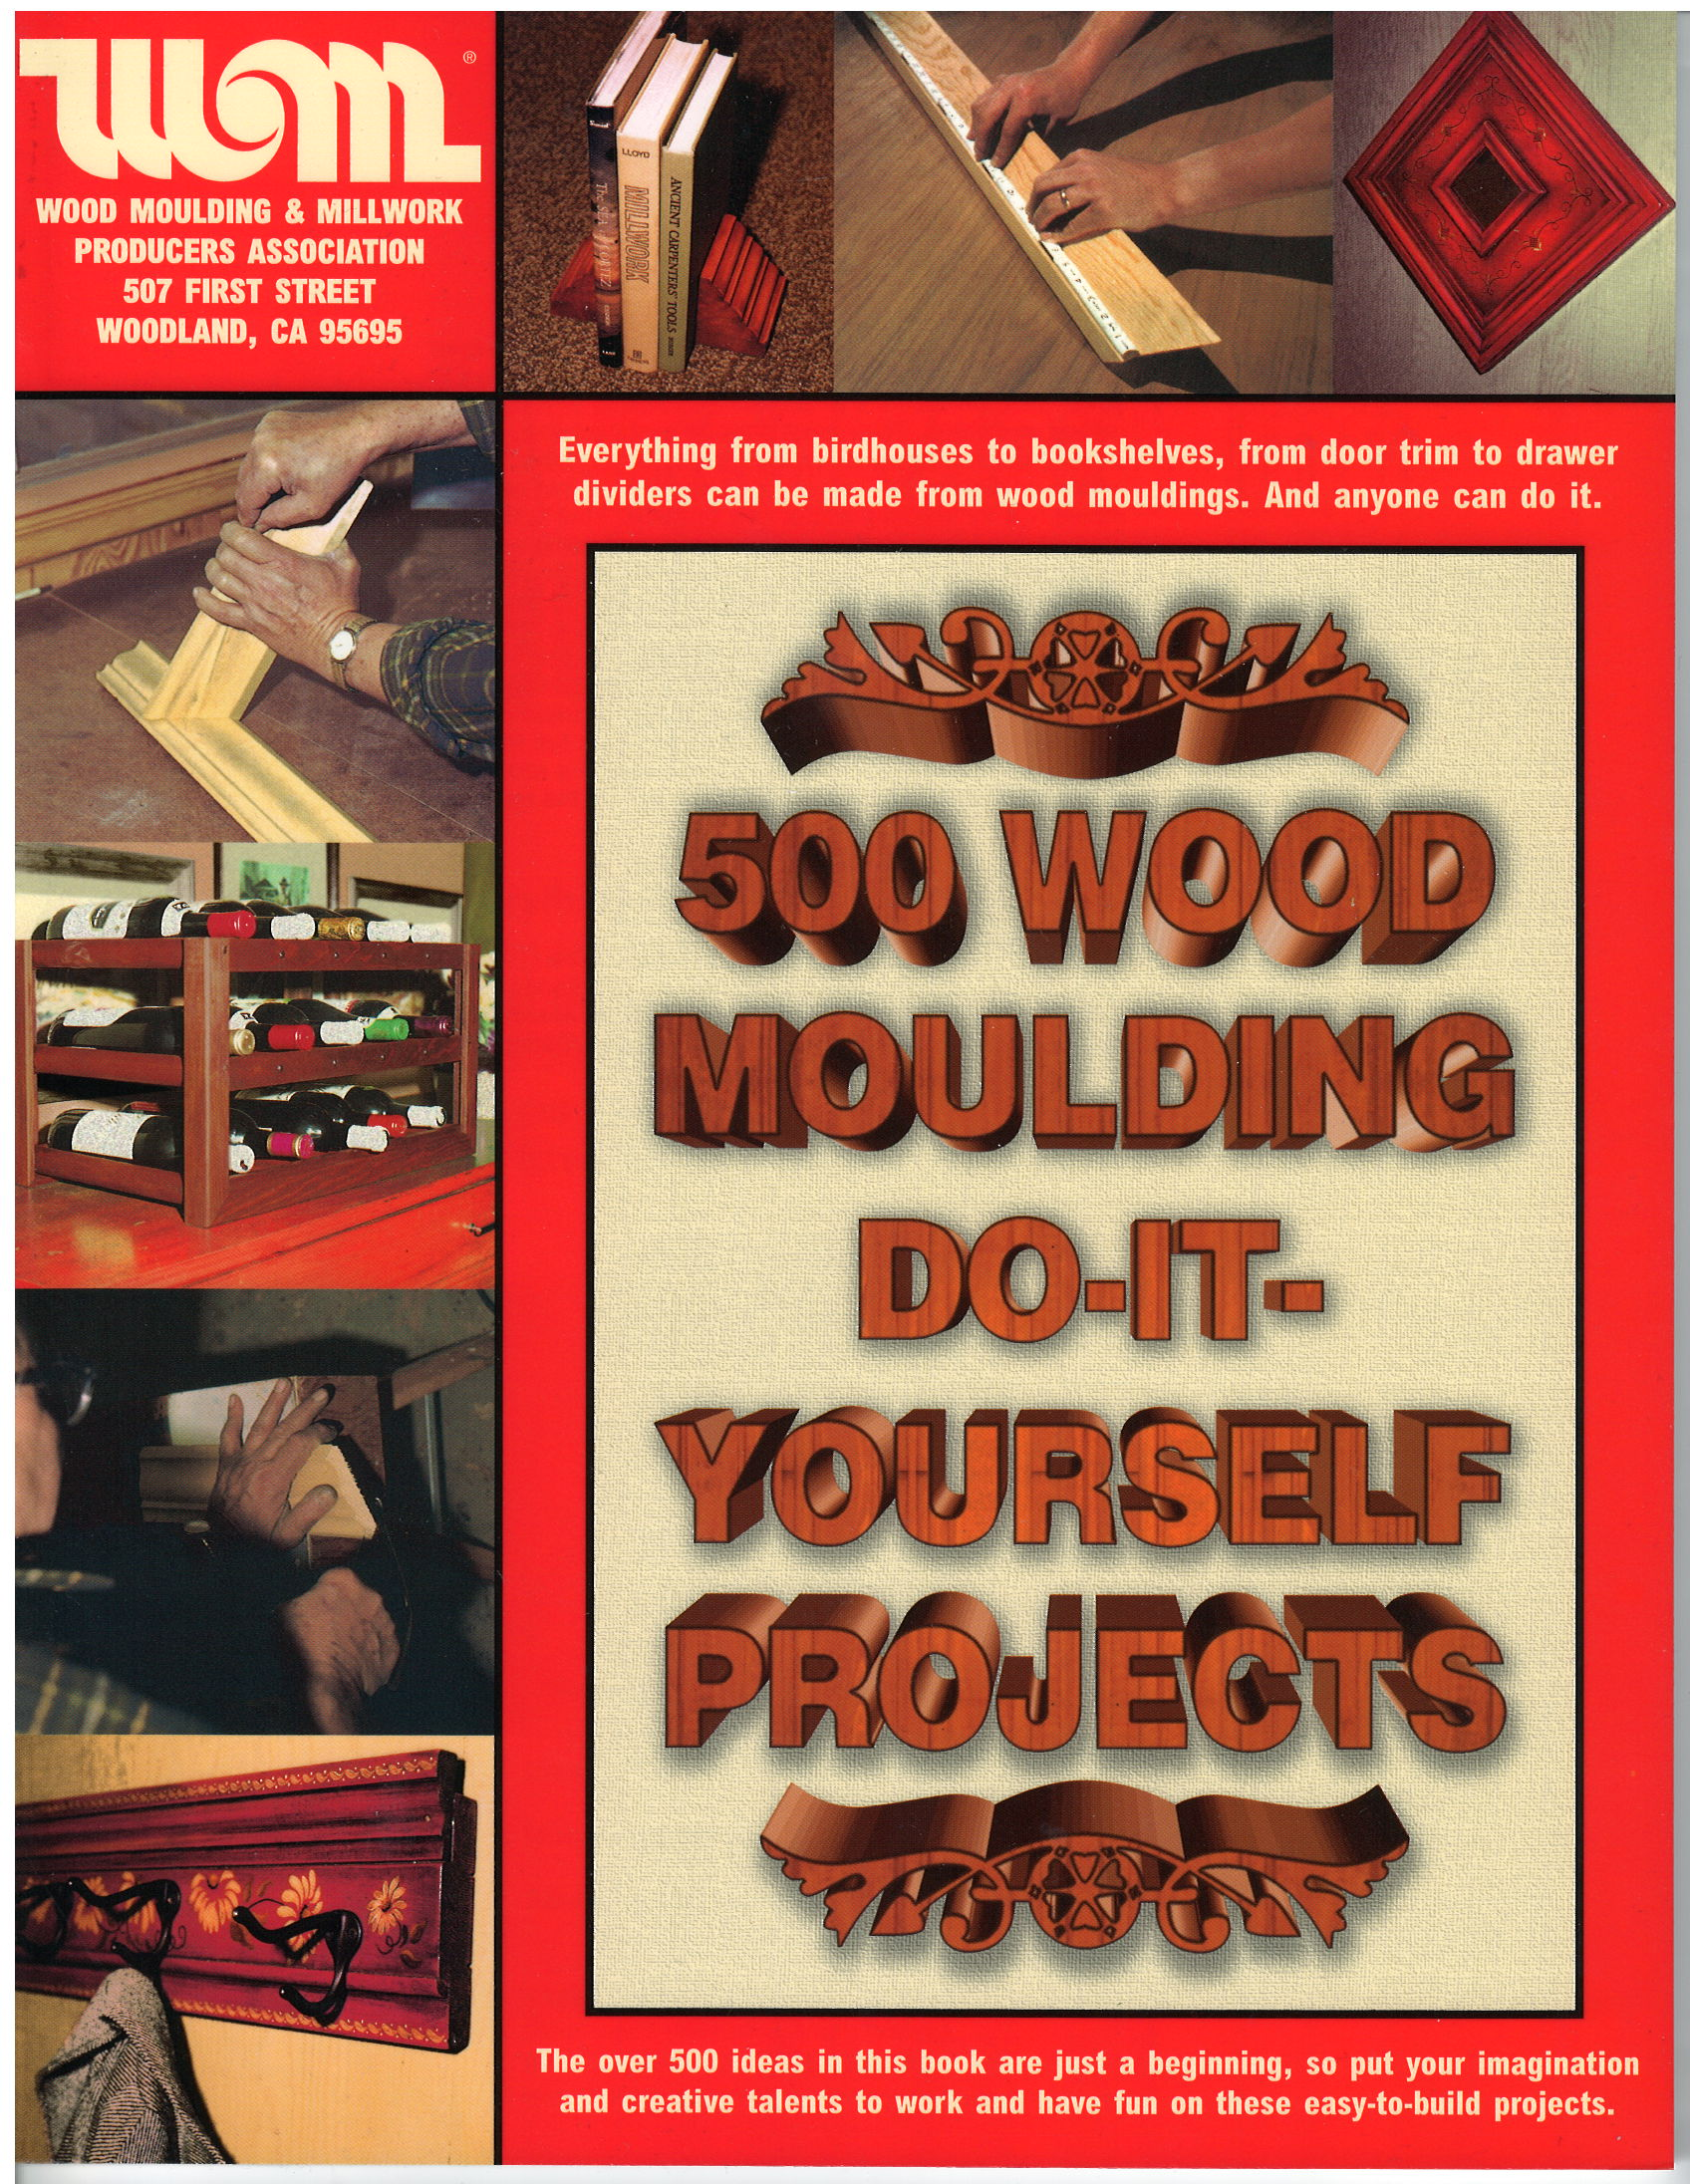 500 wood moulding do it yourself projects mmpa 500 wood moulding do it yourself projects solutioingenieria Choice Image